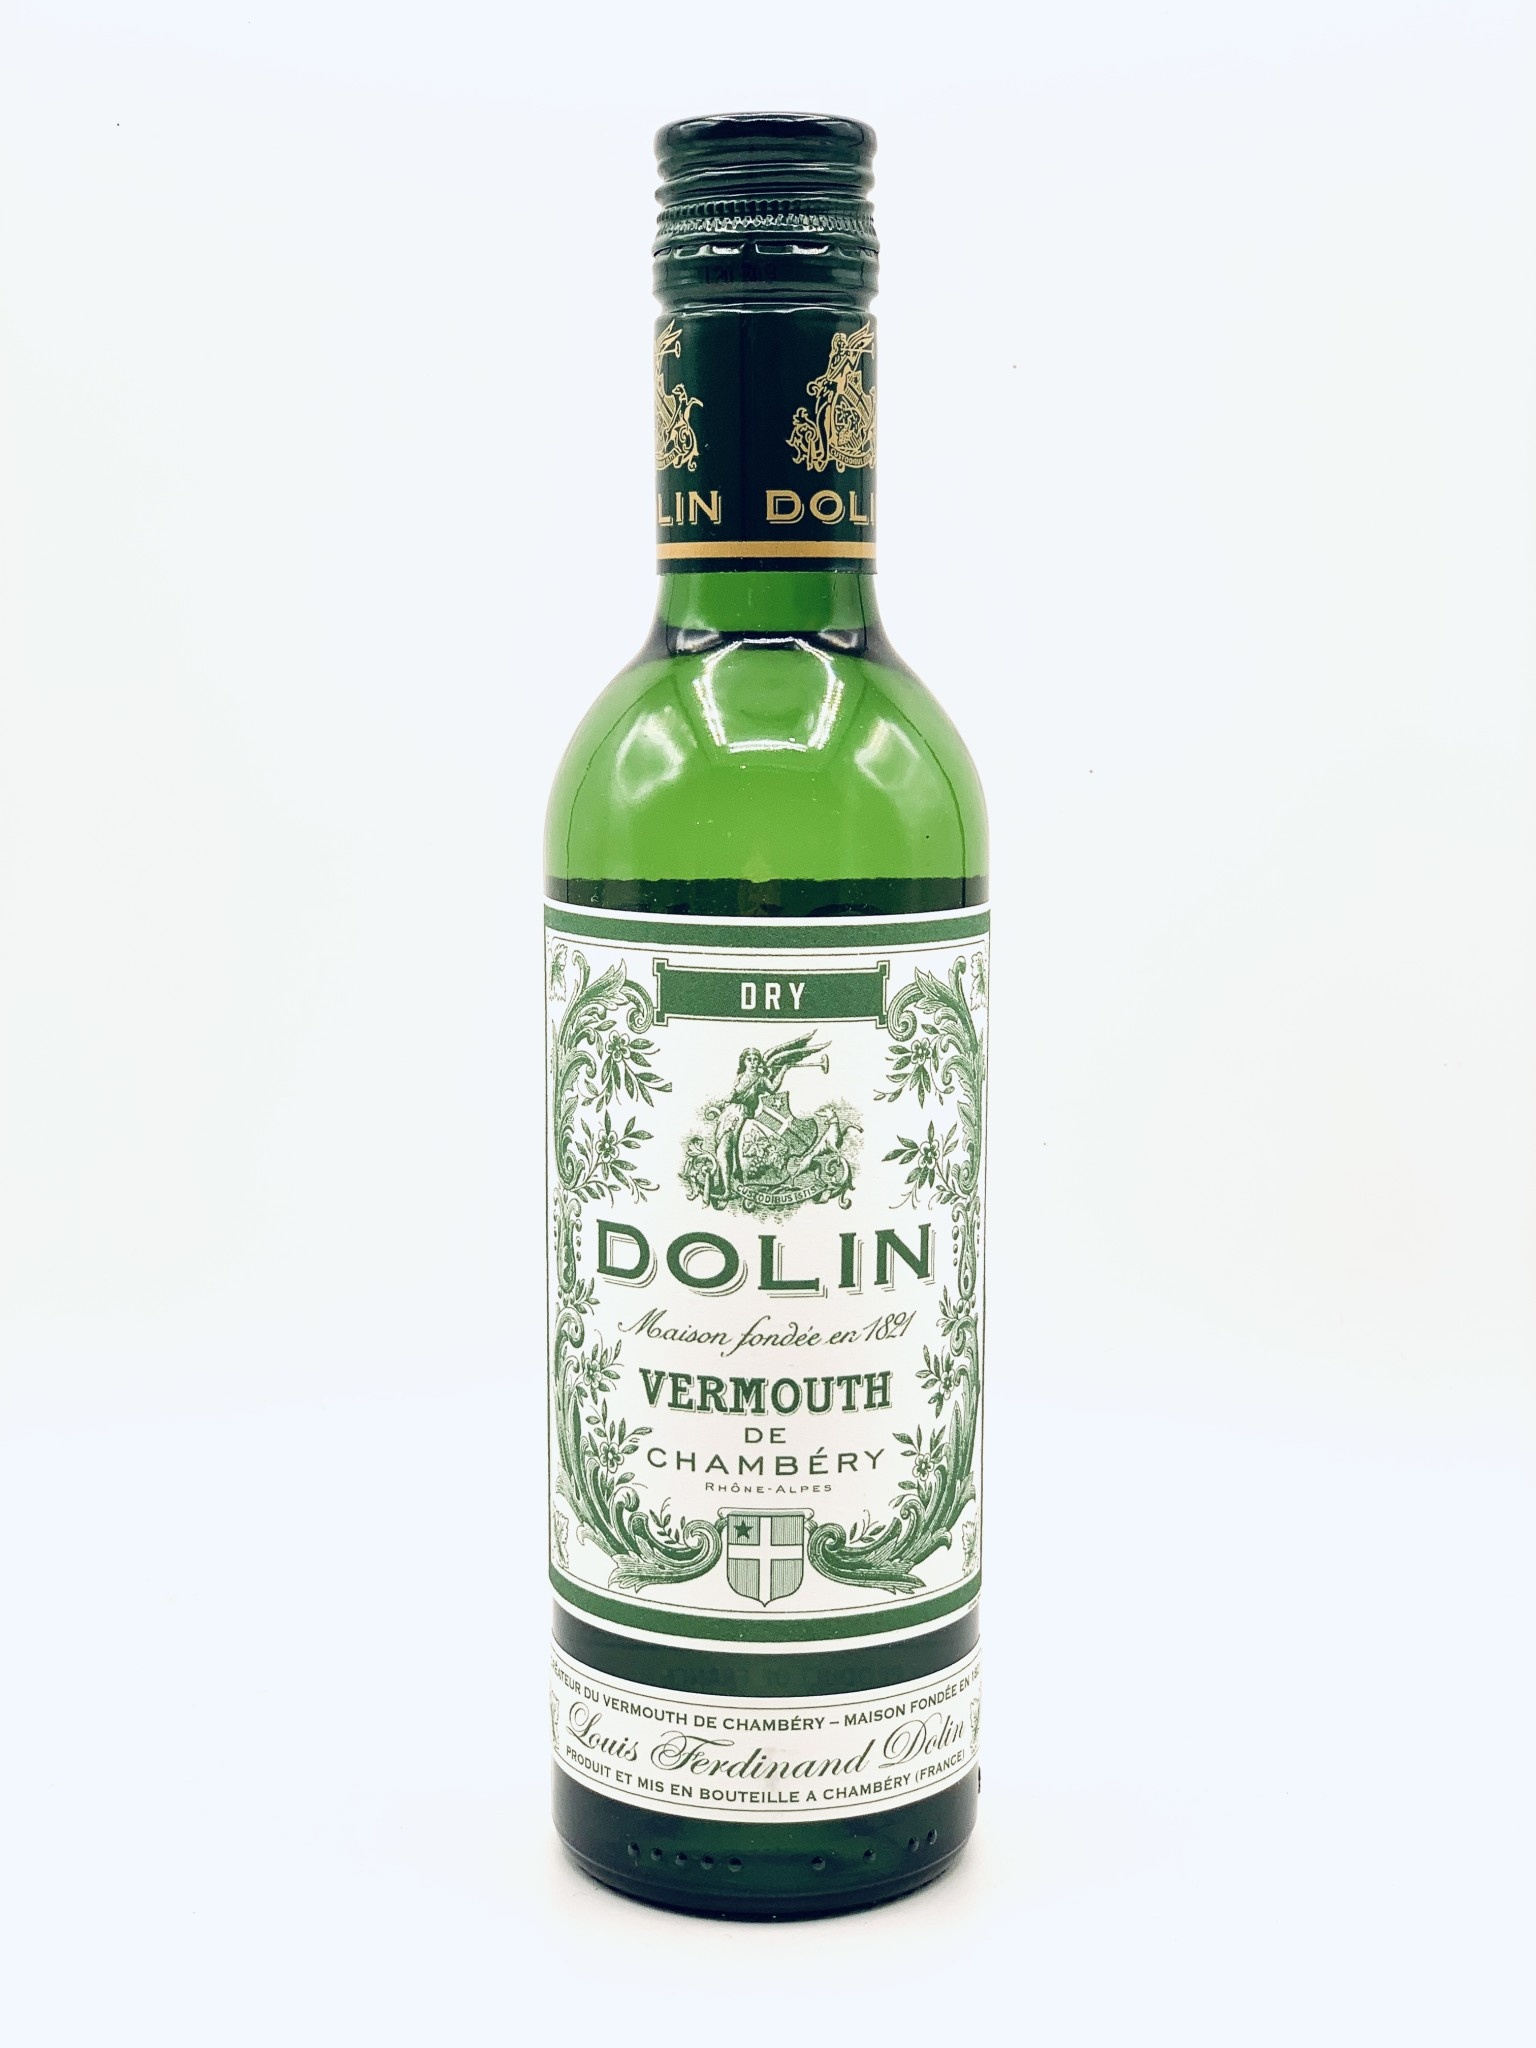 Dolin Vermouth de Chambery A.O.C. Dry 375ml (35 Proof)